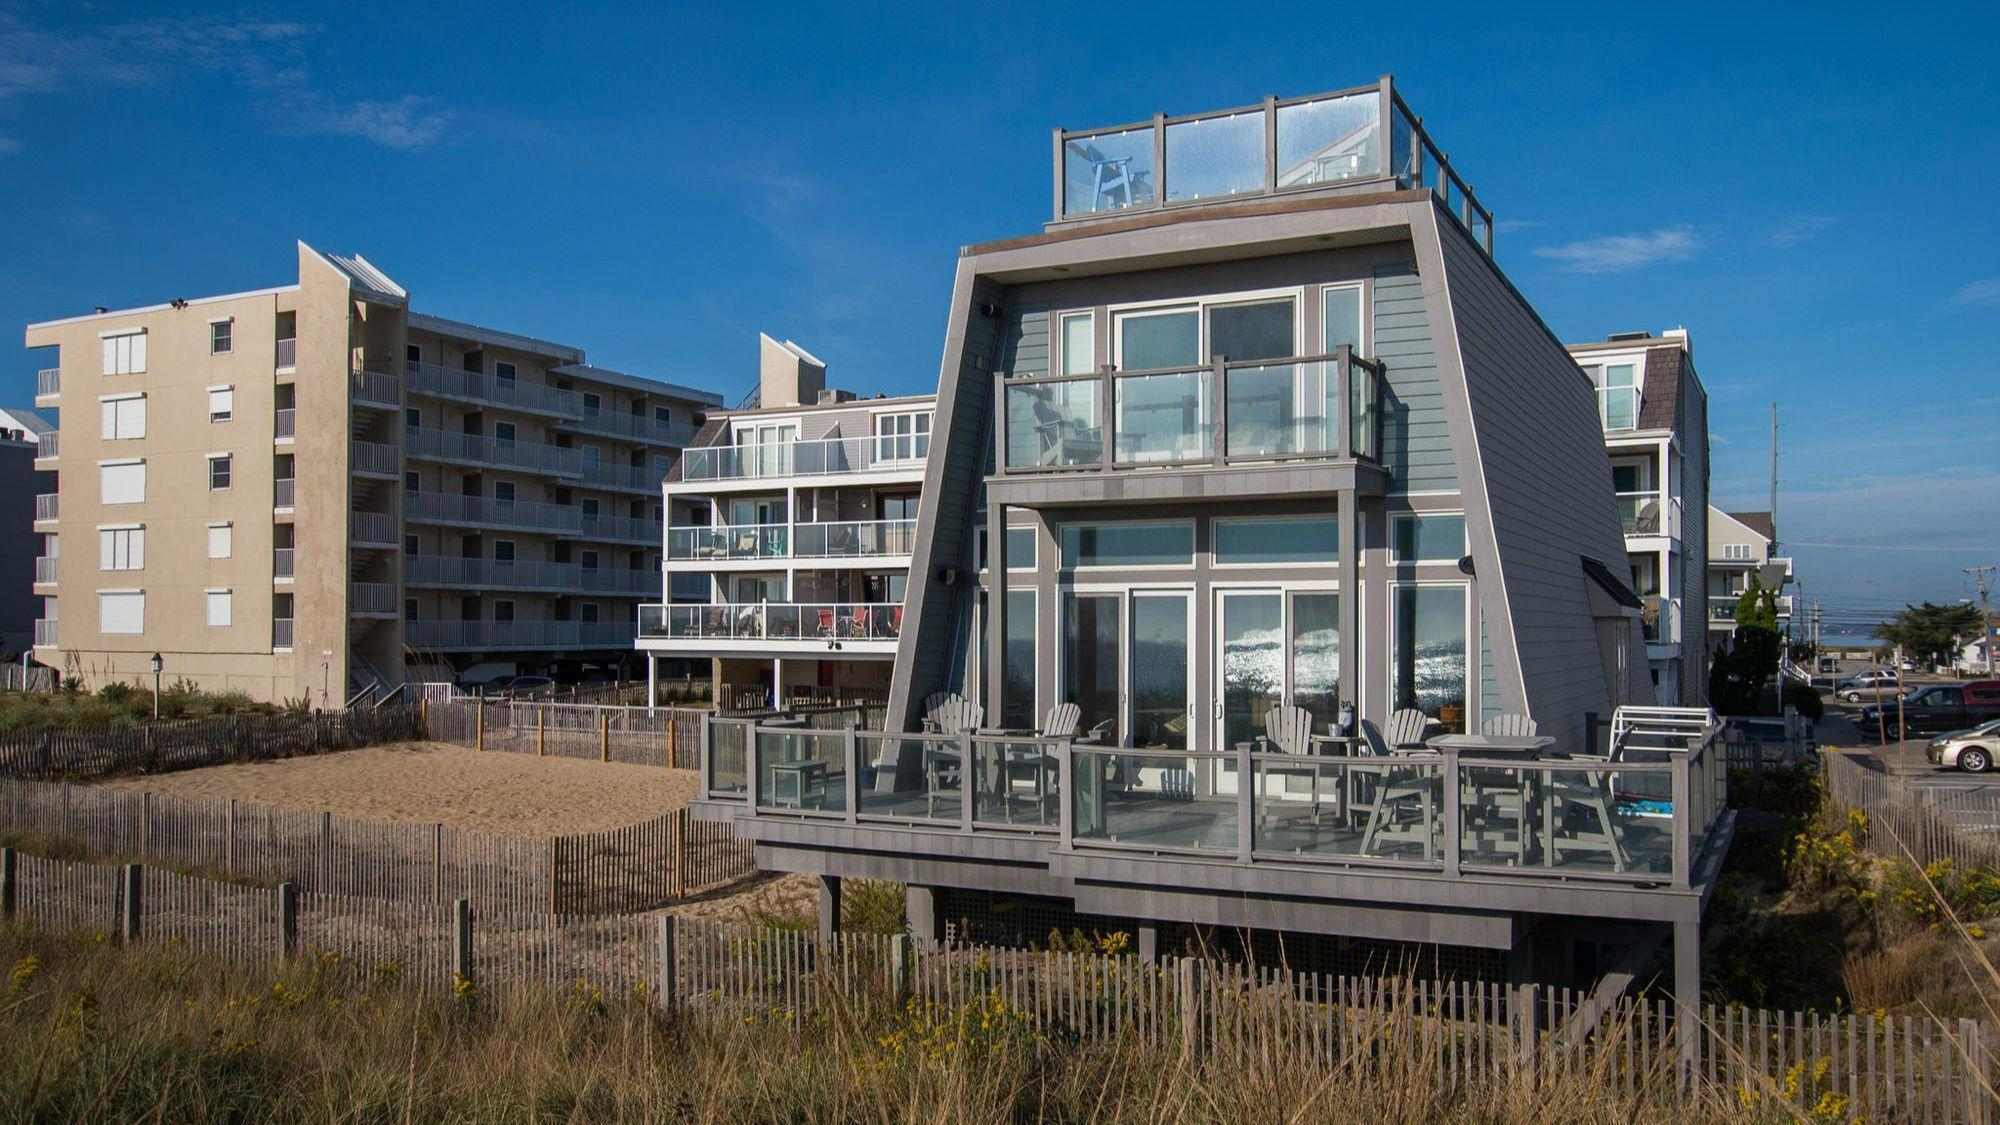 High-end rental homes in Ocean City, Rehoboth Beach offer luxury on vacation